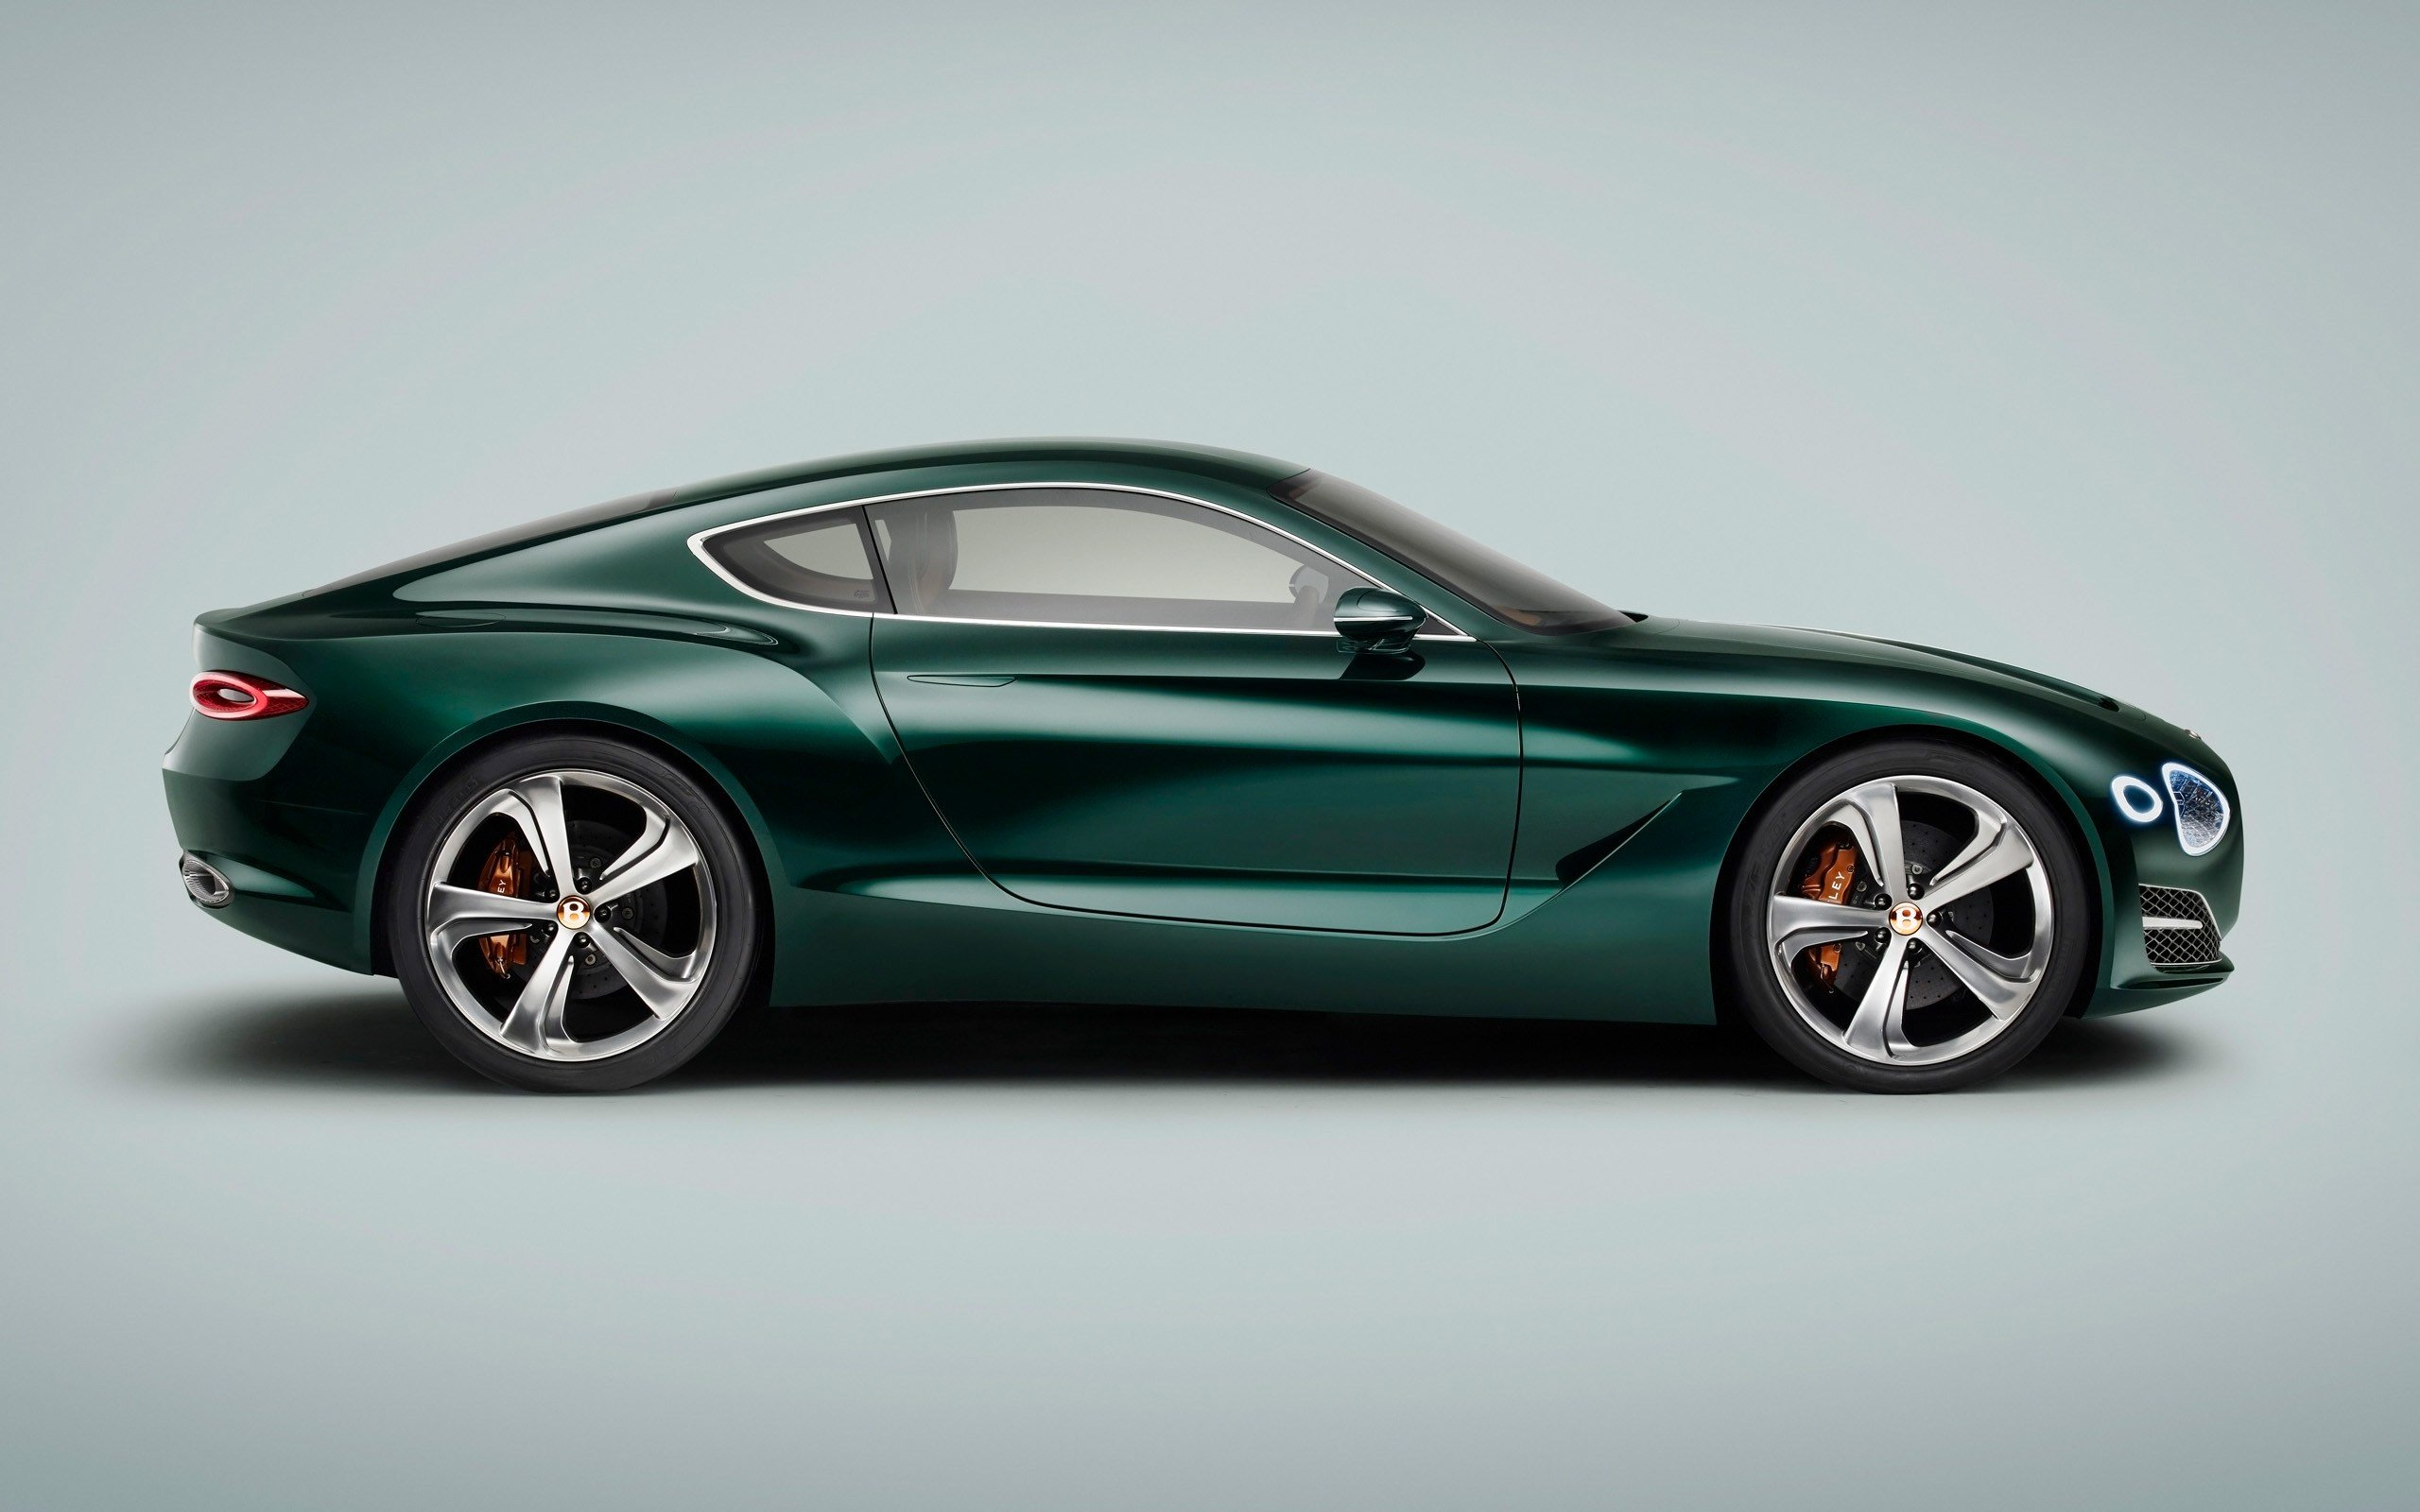 Latest New Exp 10 Speed 6 Concept Hints At Potential Bentley Free Download